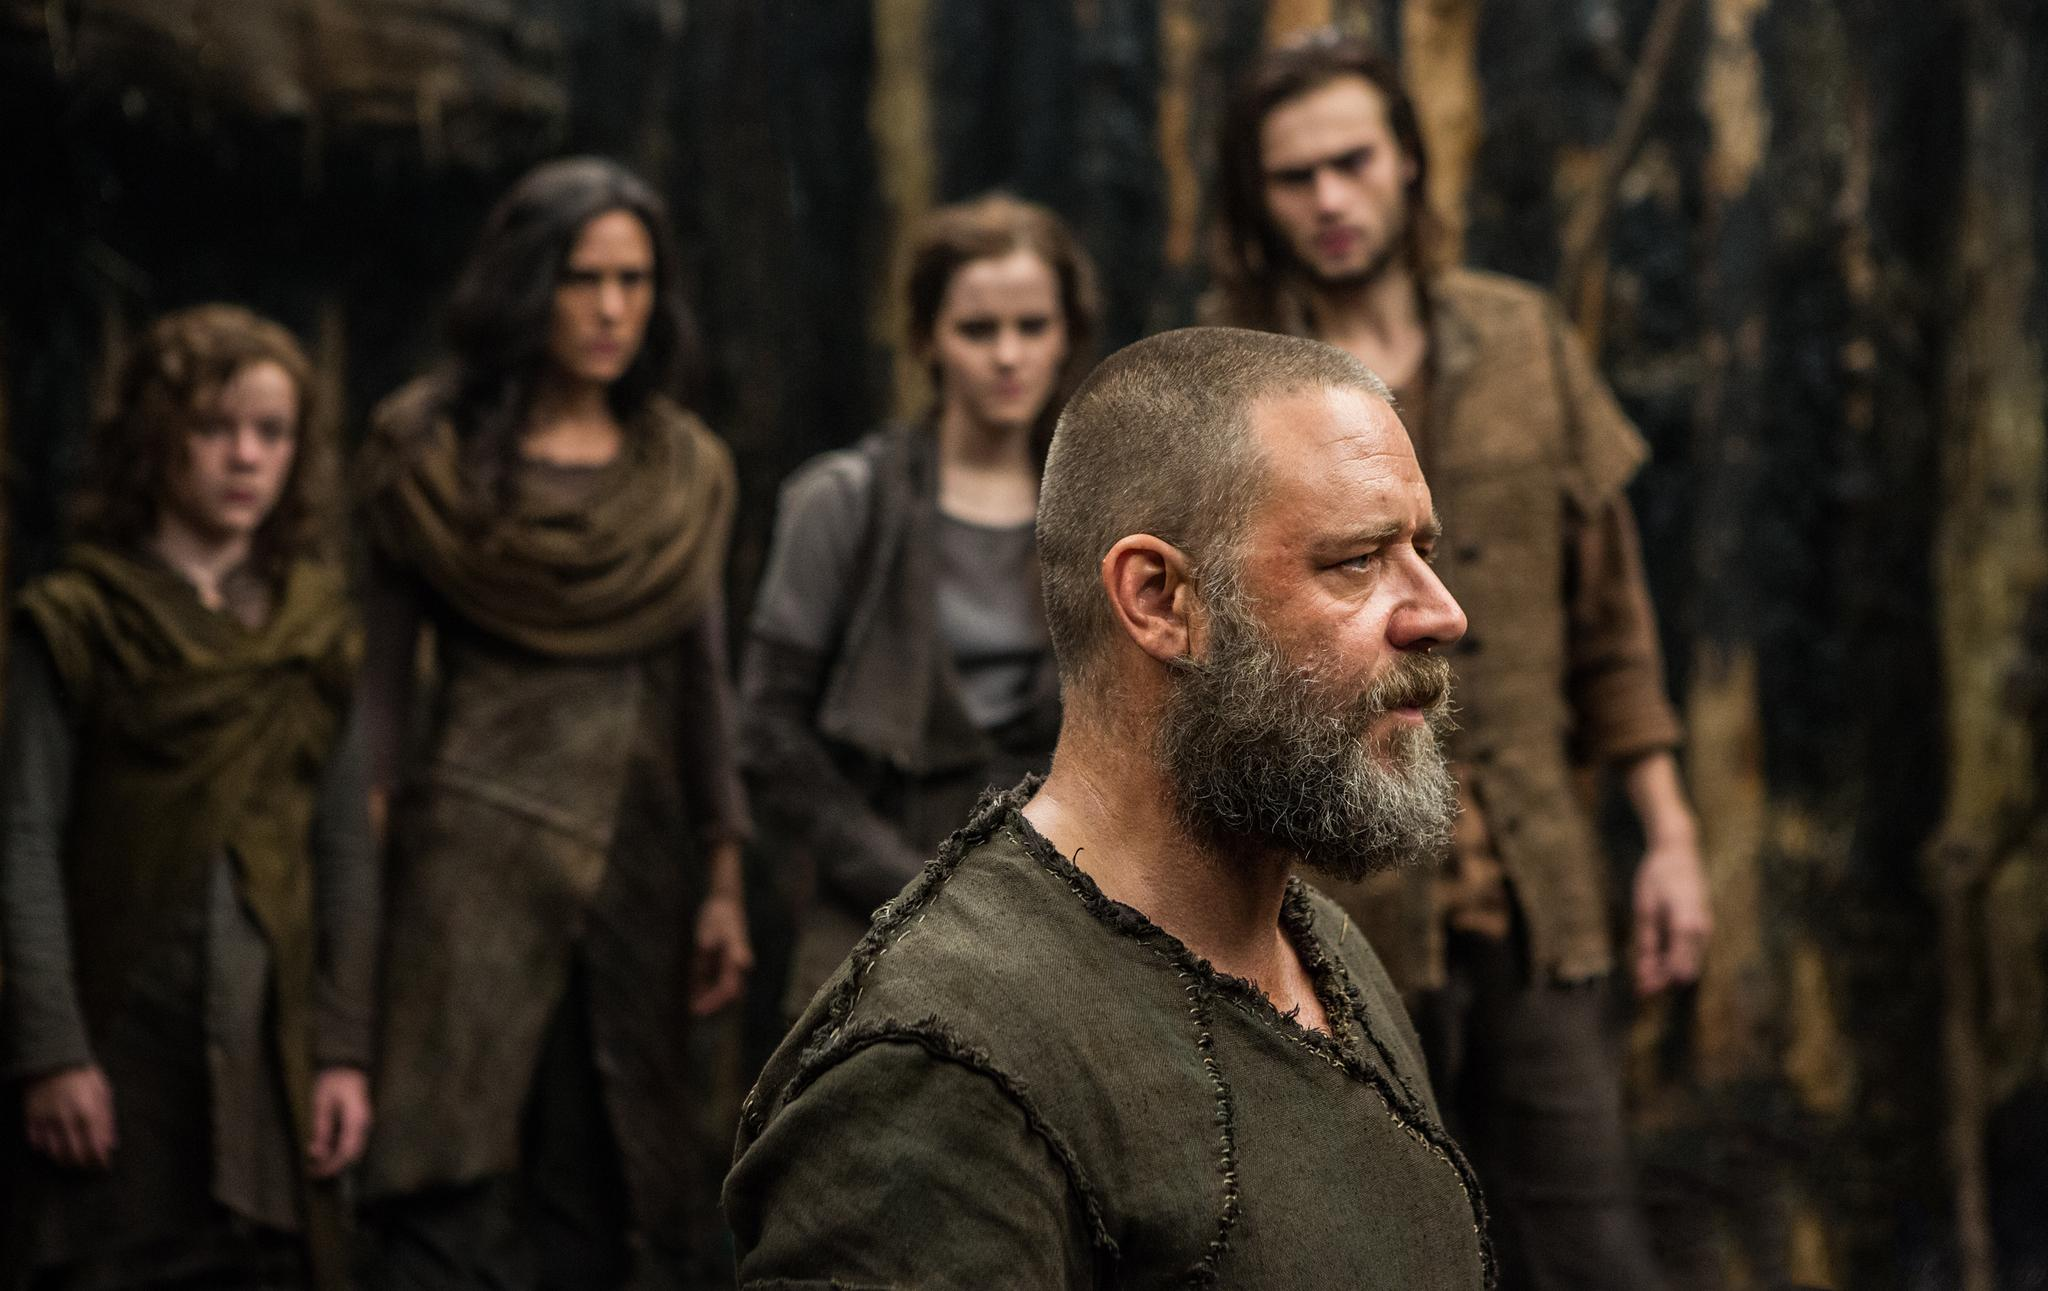 still-of-jennifer-connelly,-russell-crowe,-emma-watson,-leo-mchugh-and-douglas-booth-in-noah-(2014)-large-picture